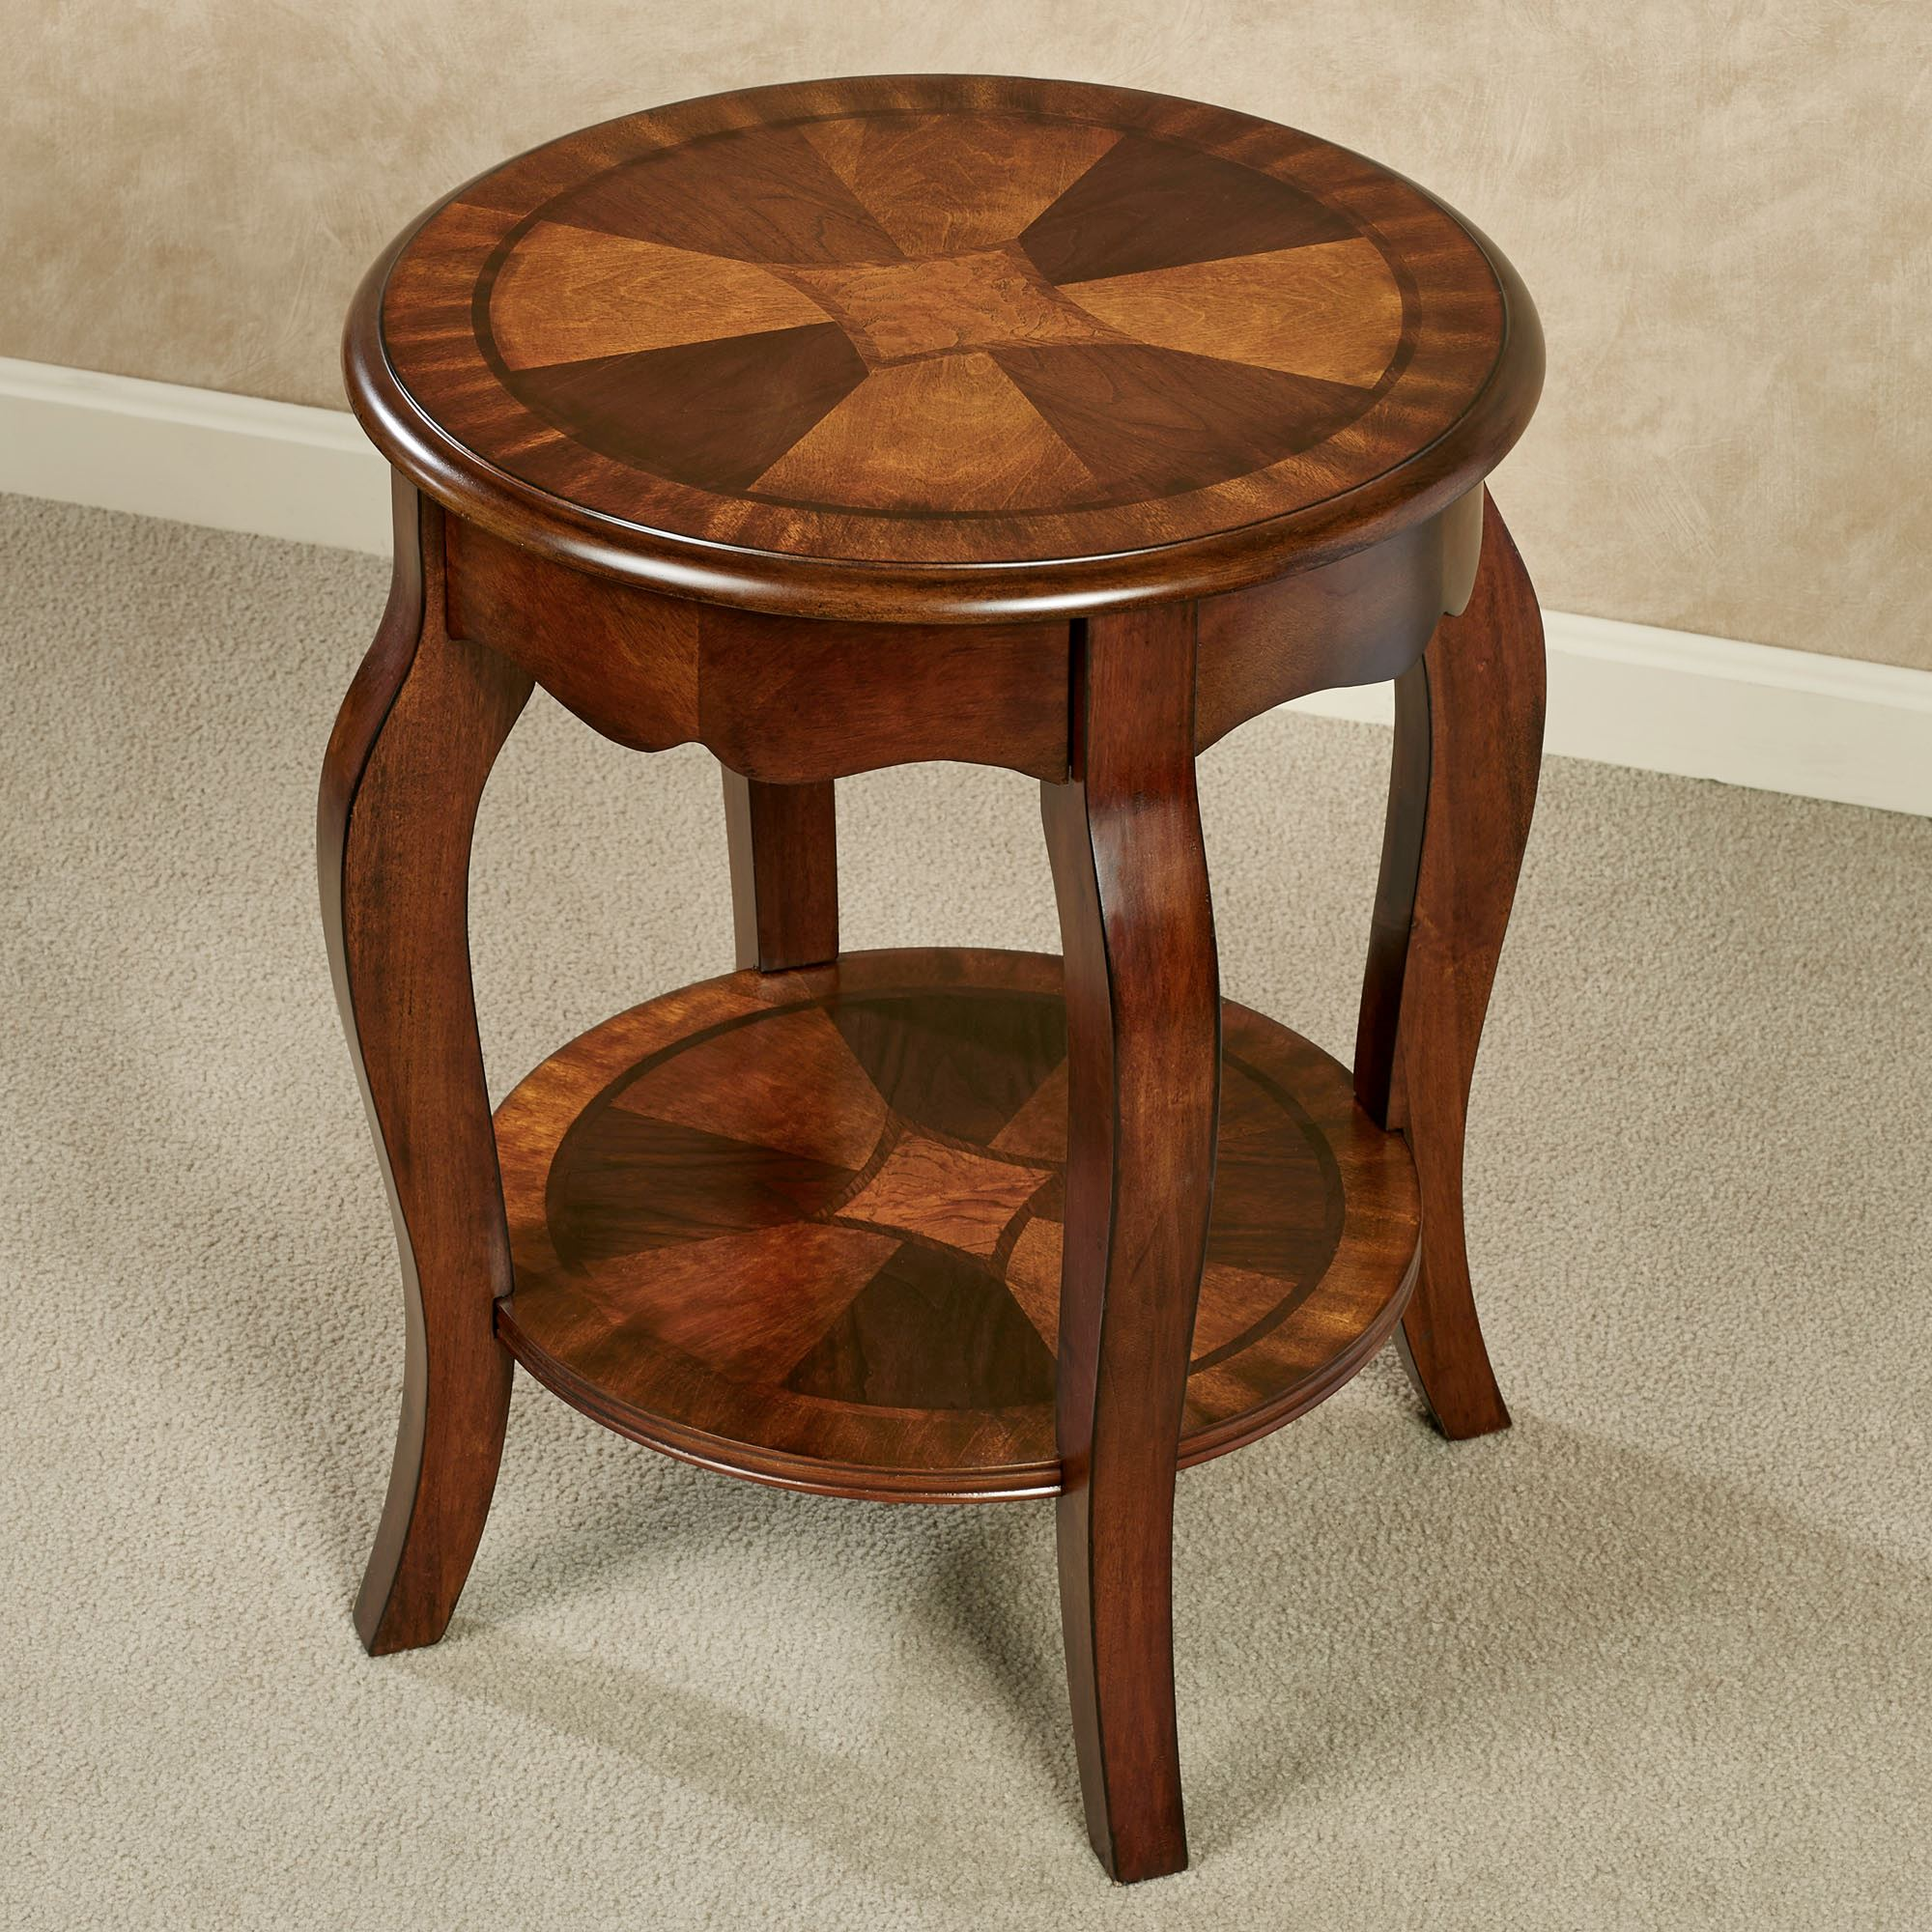 rhylen round wooden accent table wood classic cherry touch zoom canadian tire dining chairs coffee pier one headboards furniture design entry for small spaces vintage sofa designs